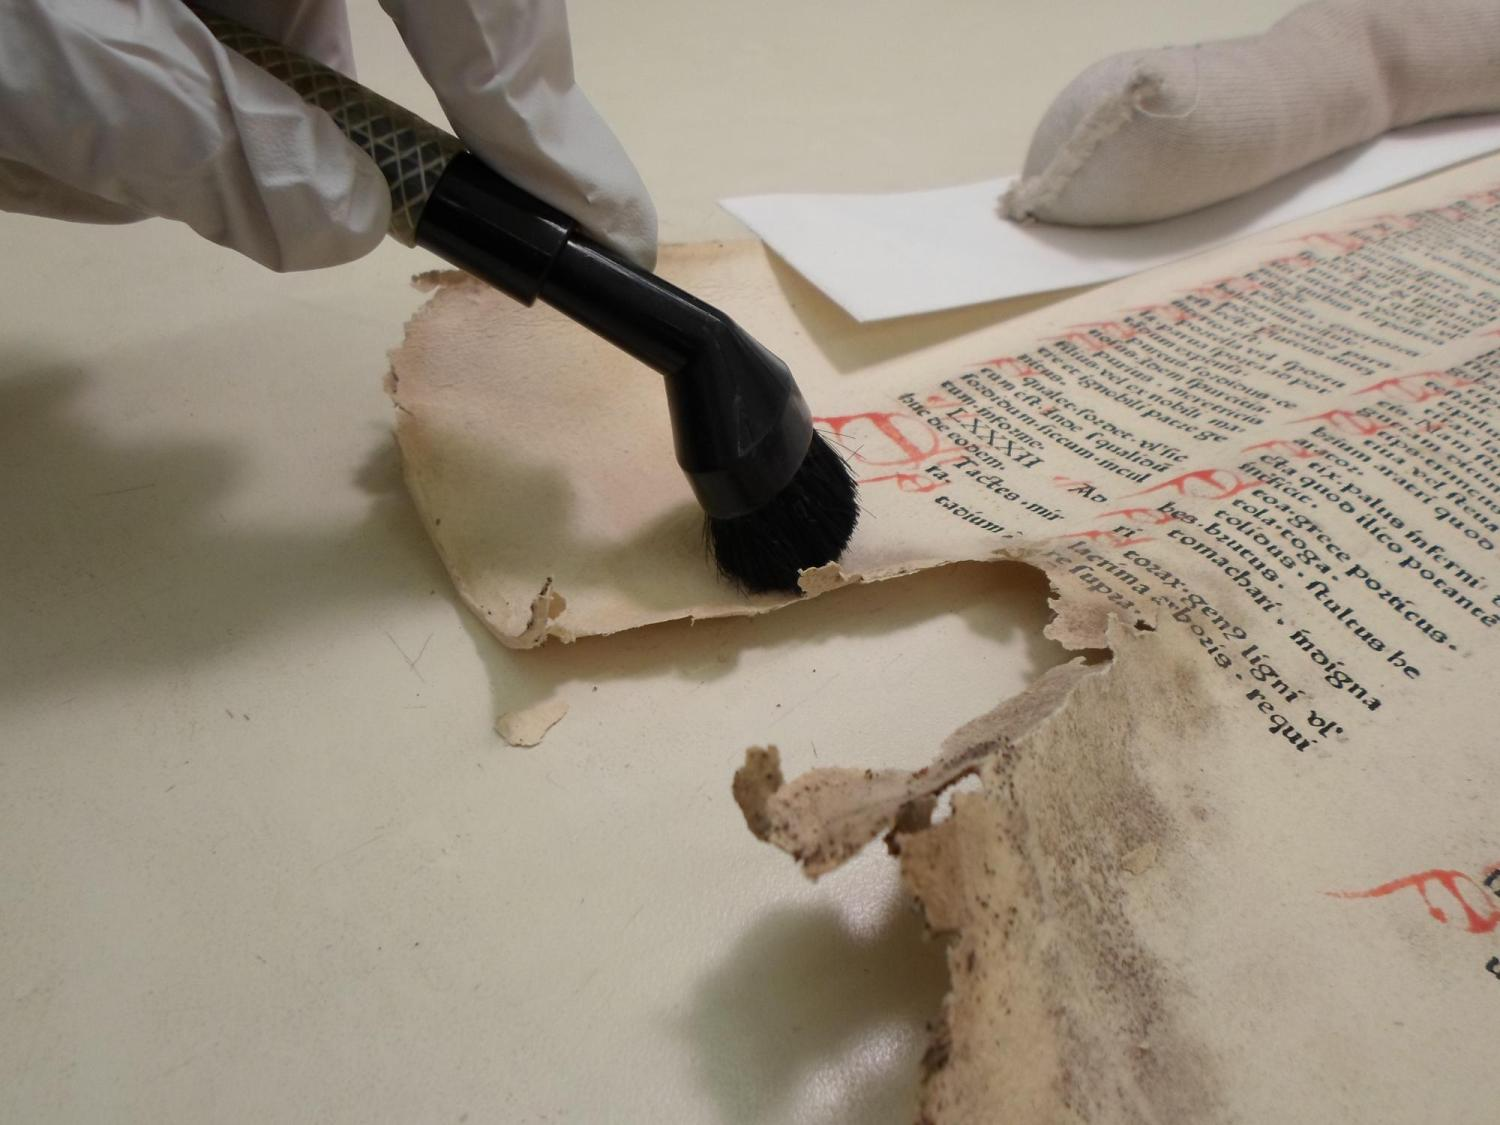 A preservationist works on cleaning an old and damaged document.